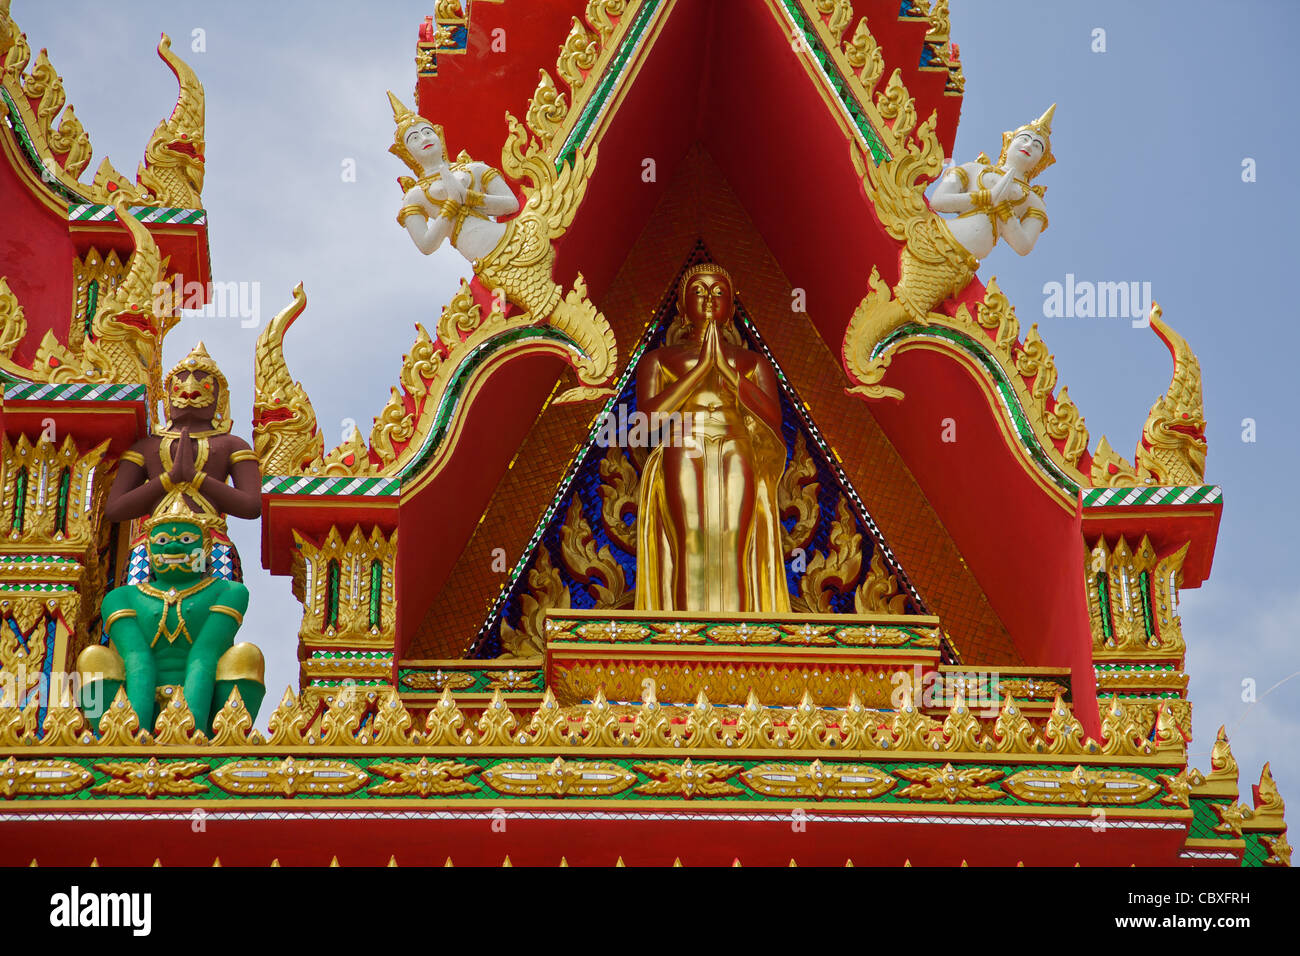 Detail on a temple in Phuket Thailand - Stock Image